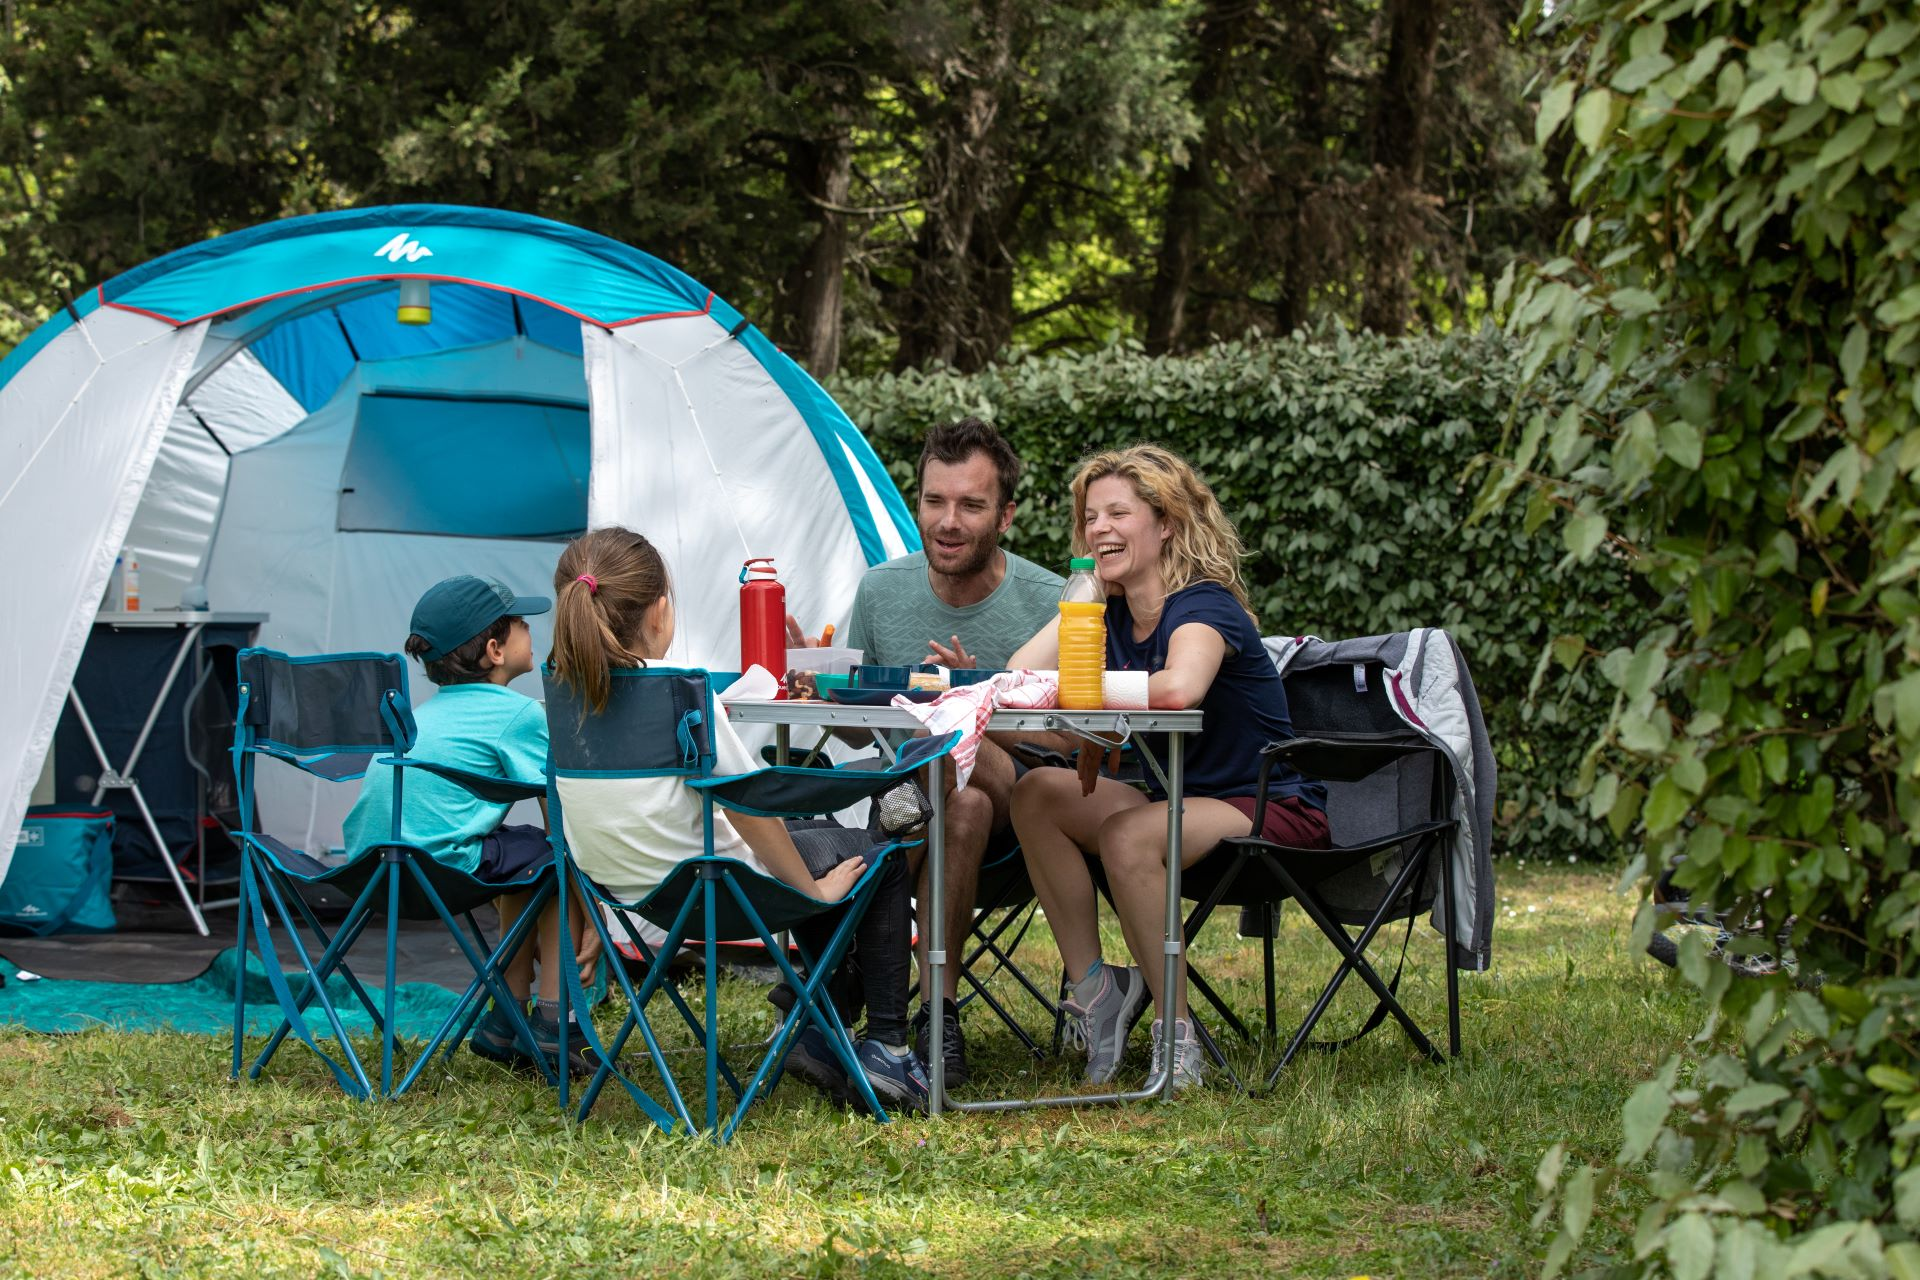 Our Beginners' Guide To Camping